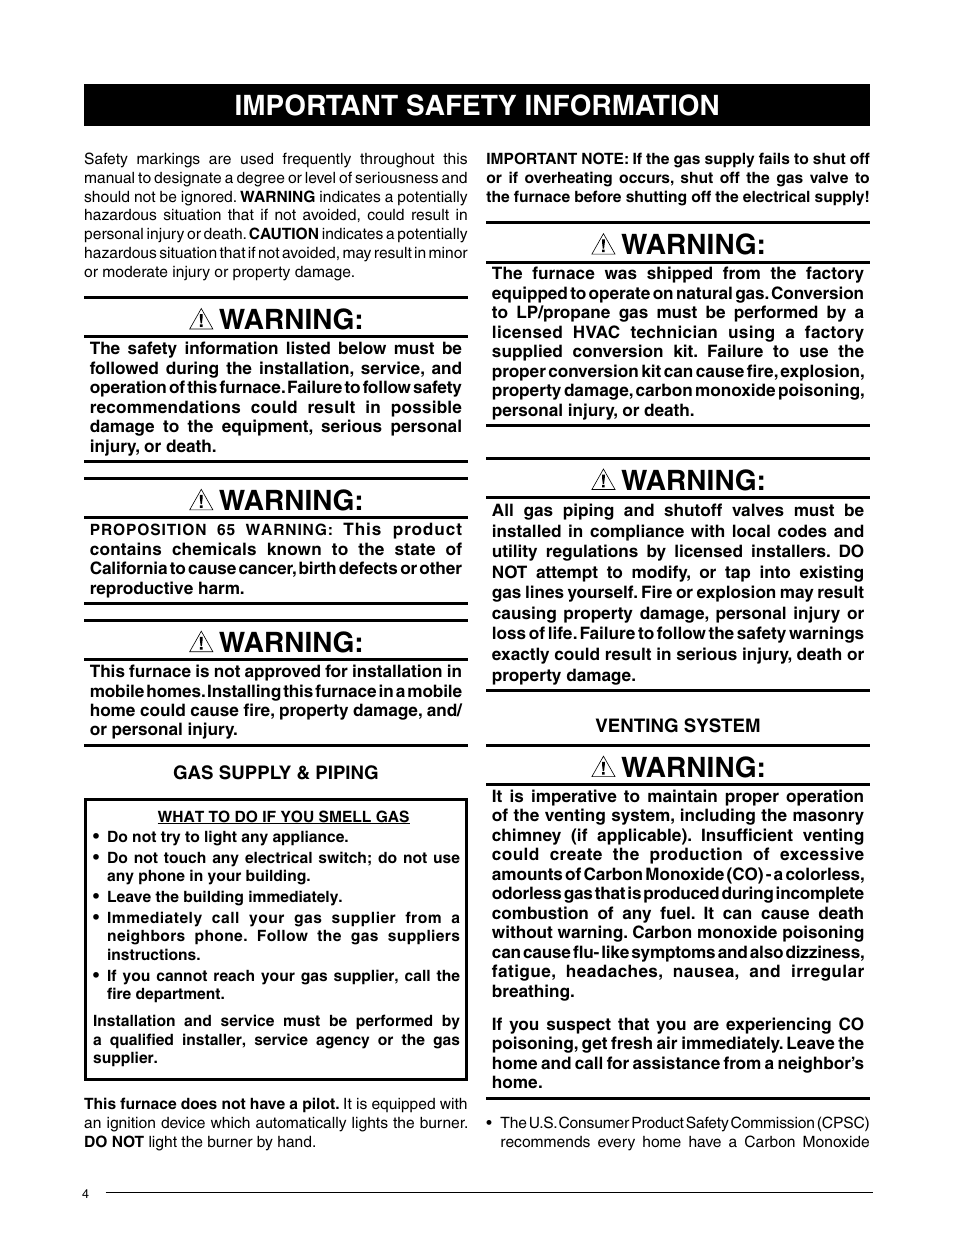 Warning, Important safety information   Comfort-Aire GDD95A